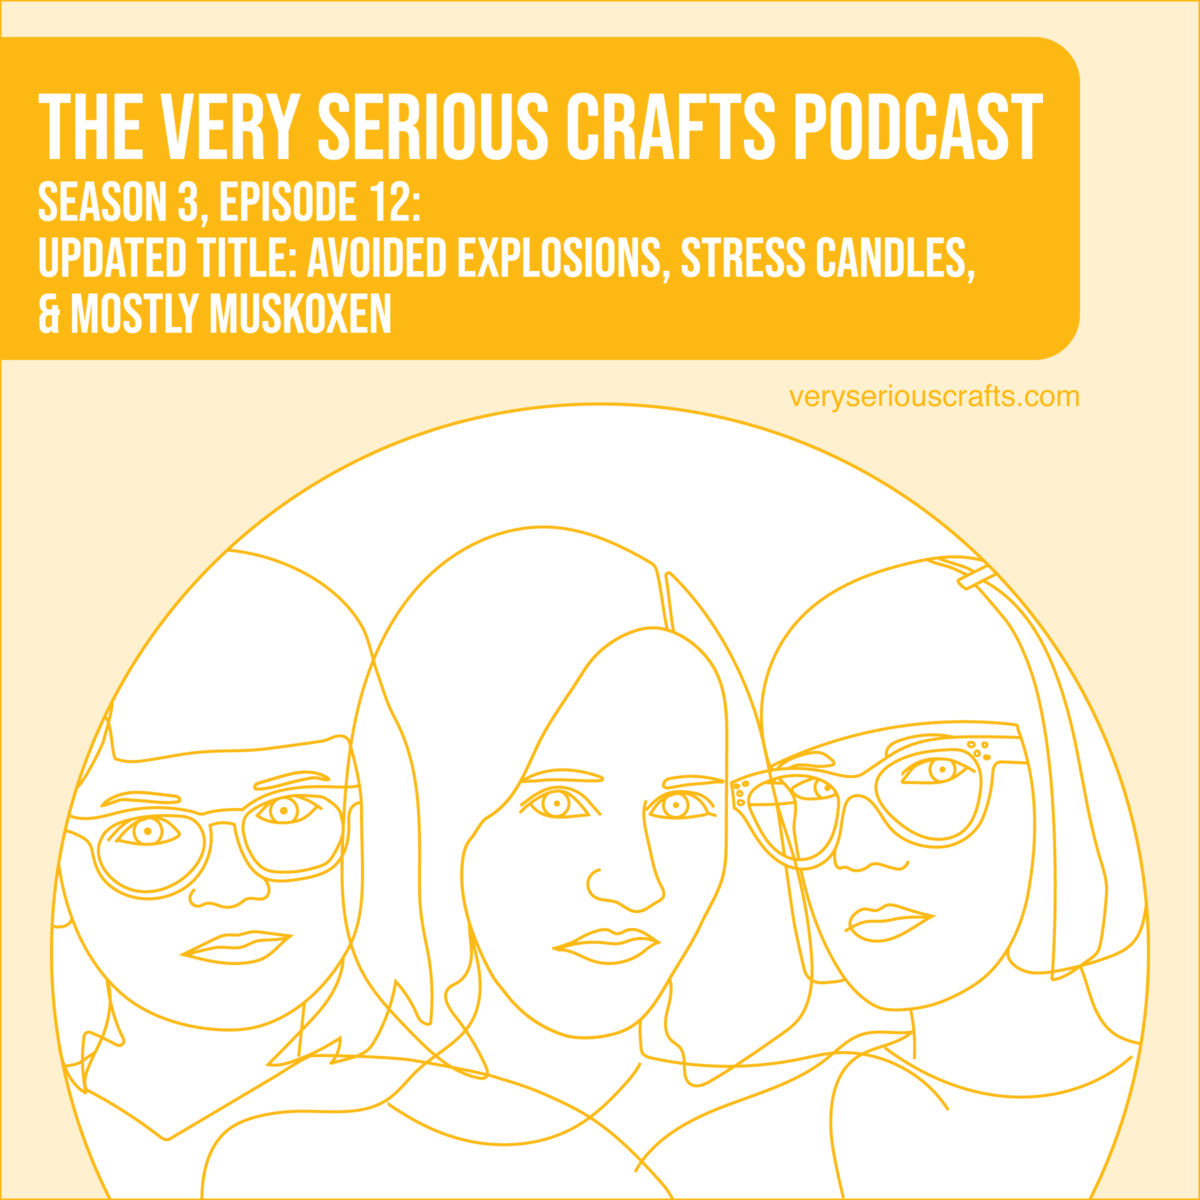 The Very Serious Crafts Podcast, Season 3: Episode 12 – Avoided Explosions, Stress Candles, and Mostly Muskoxen